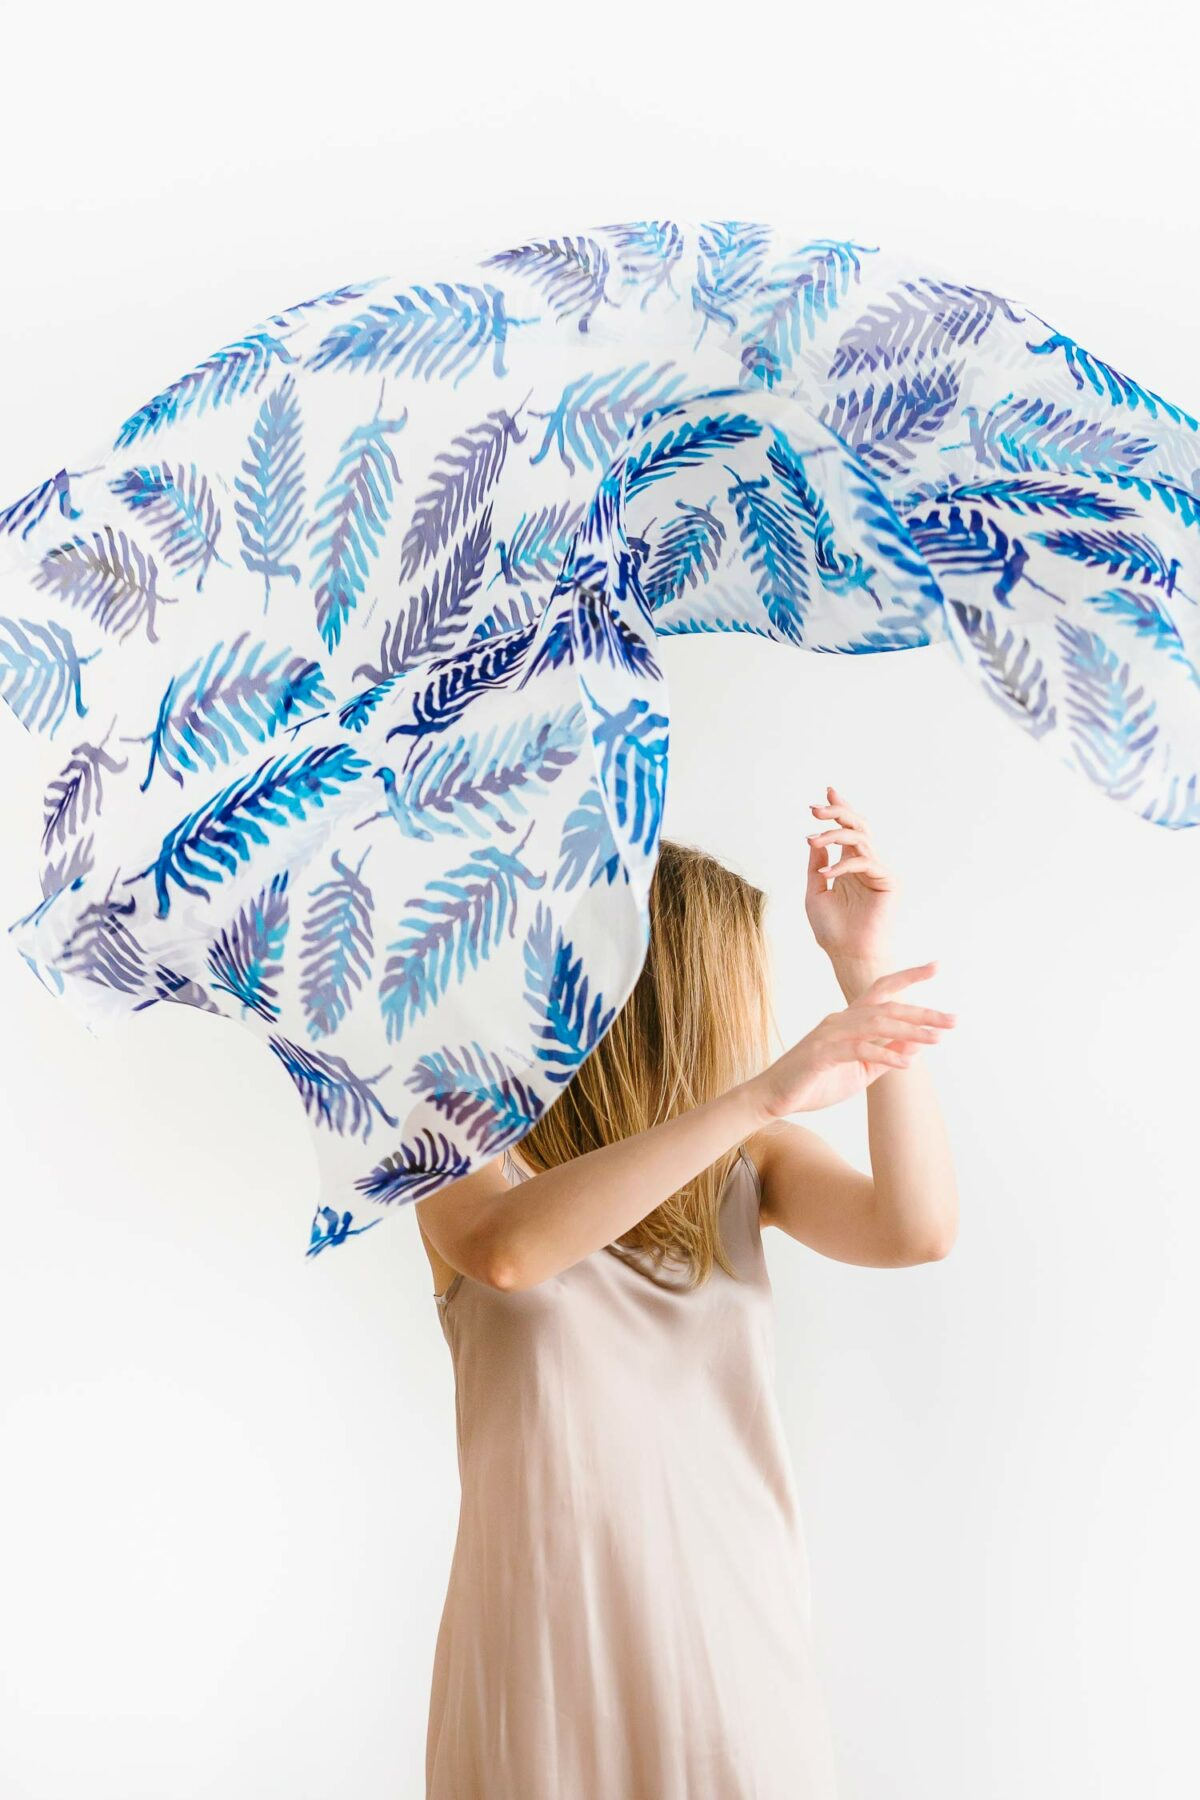 woman with a blue and white scarf above her